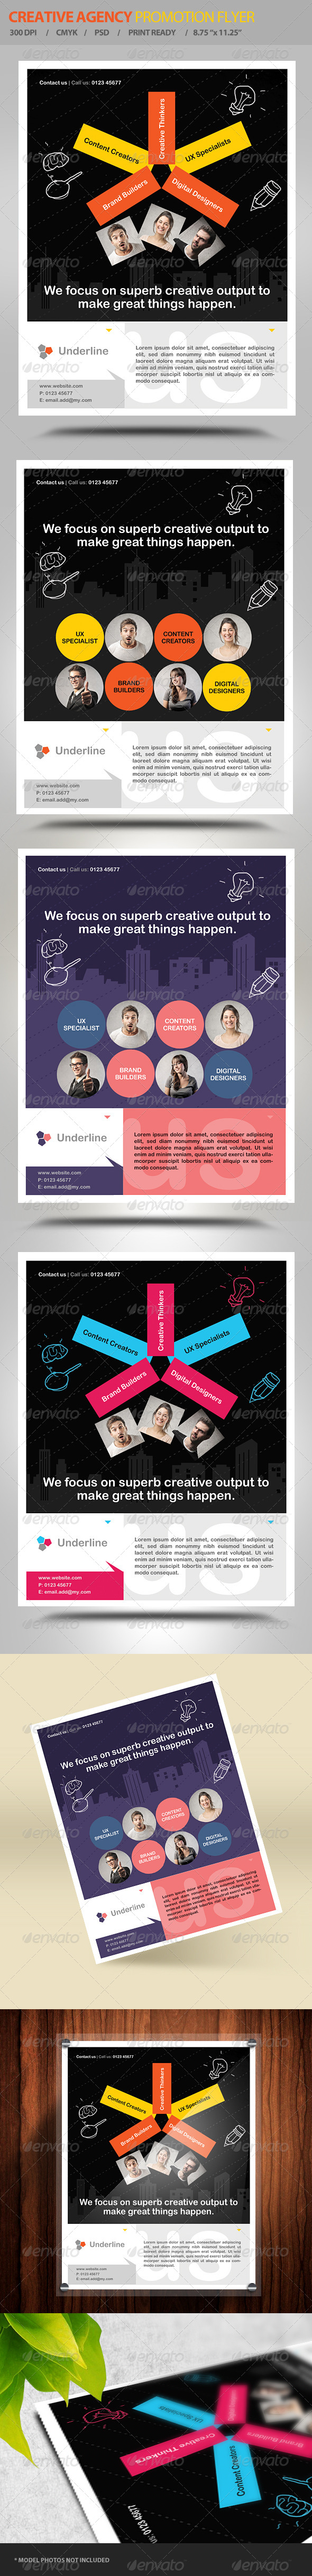 GraphicRiver Creative Design Agency Flyer Vol2 6296371